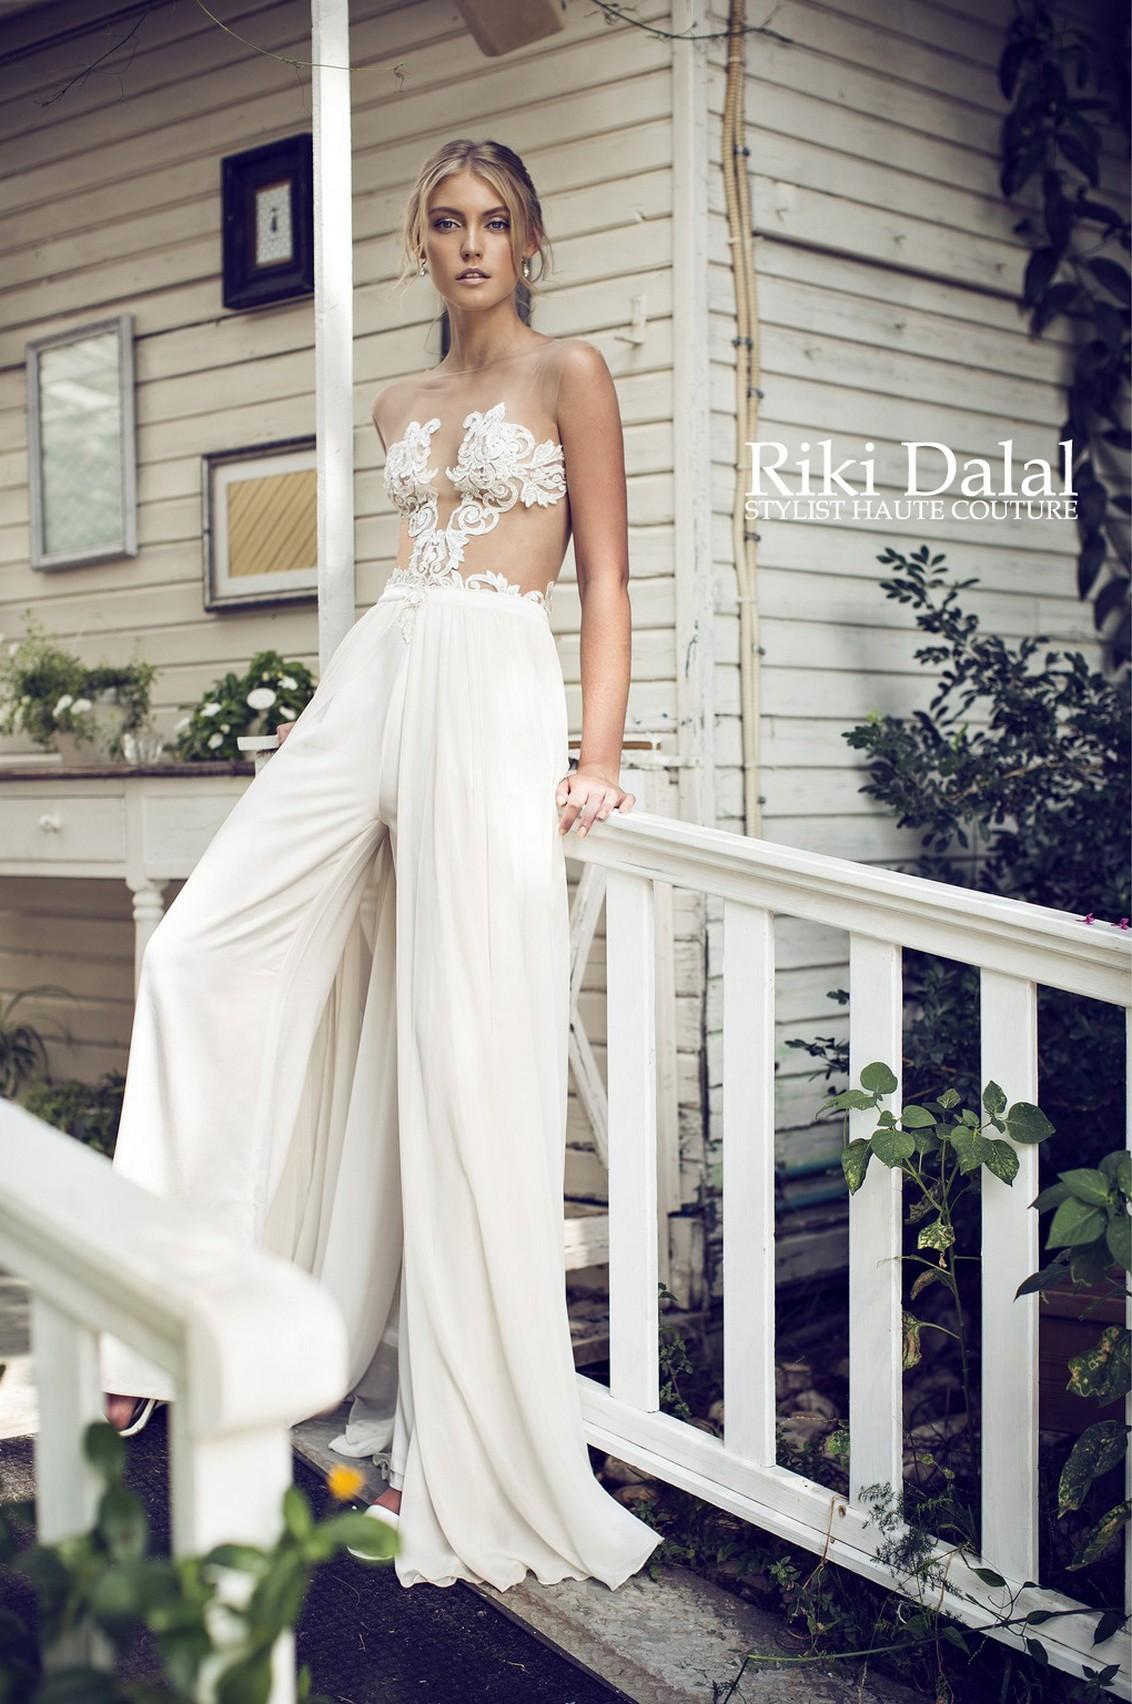 Discount Riki Dalal 2015 Jumpsuit Wedding Outfits y